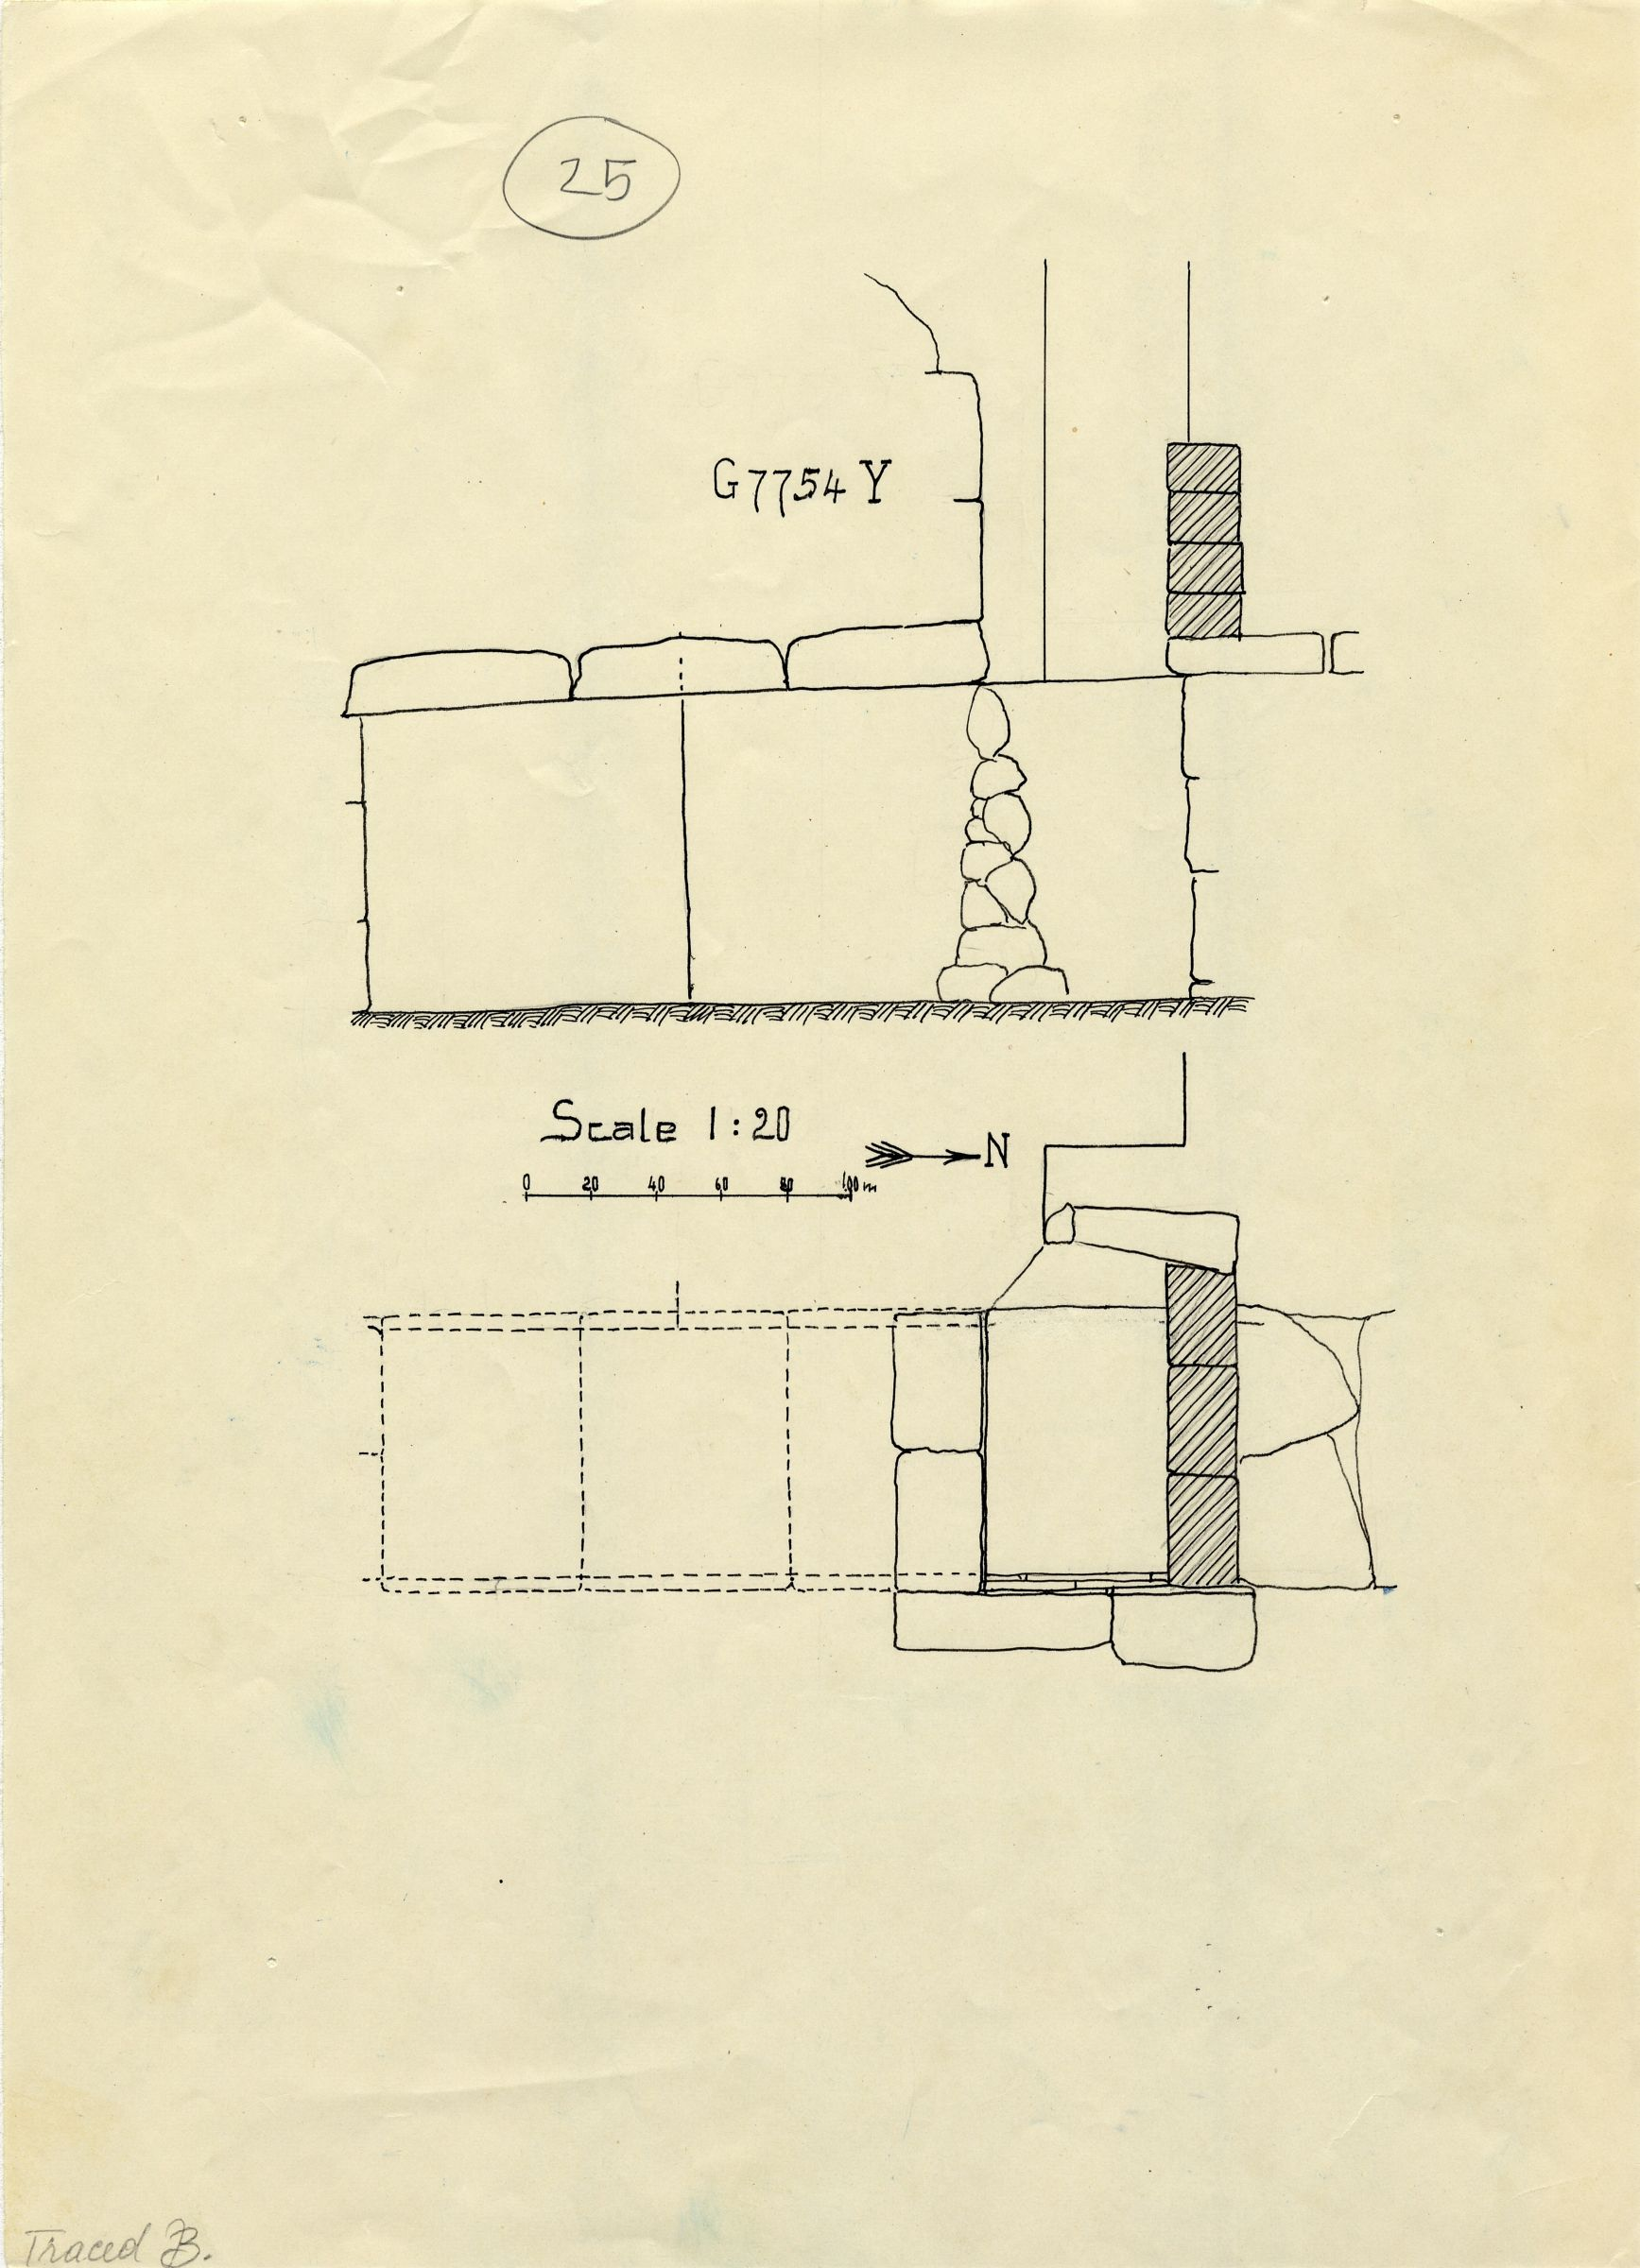 Maps and plans: G 7754, Shaft Y